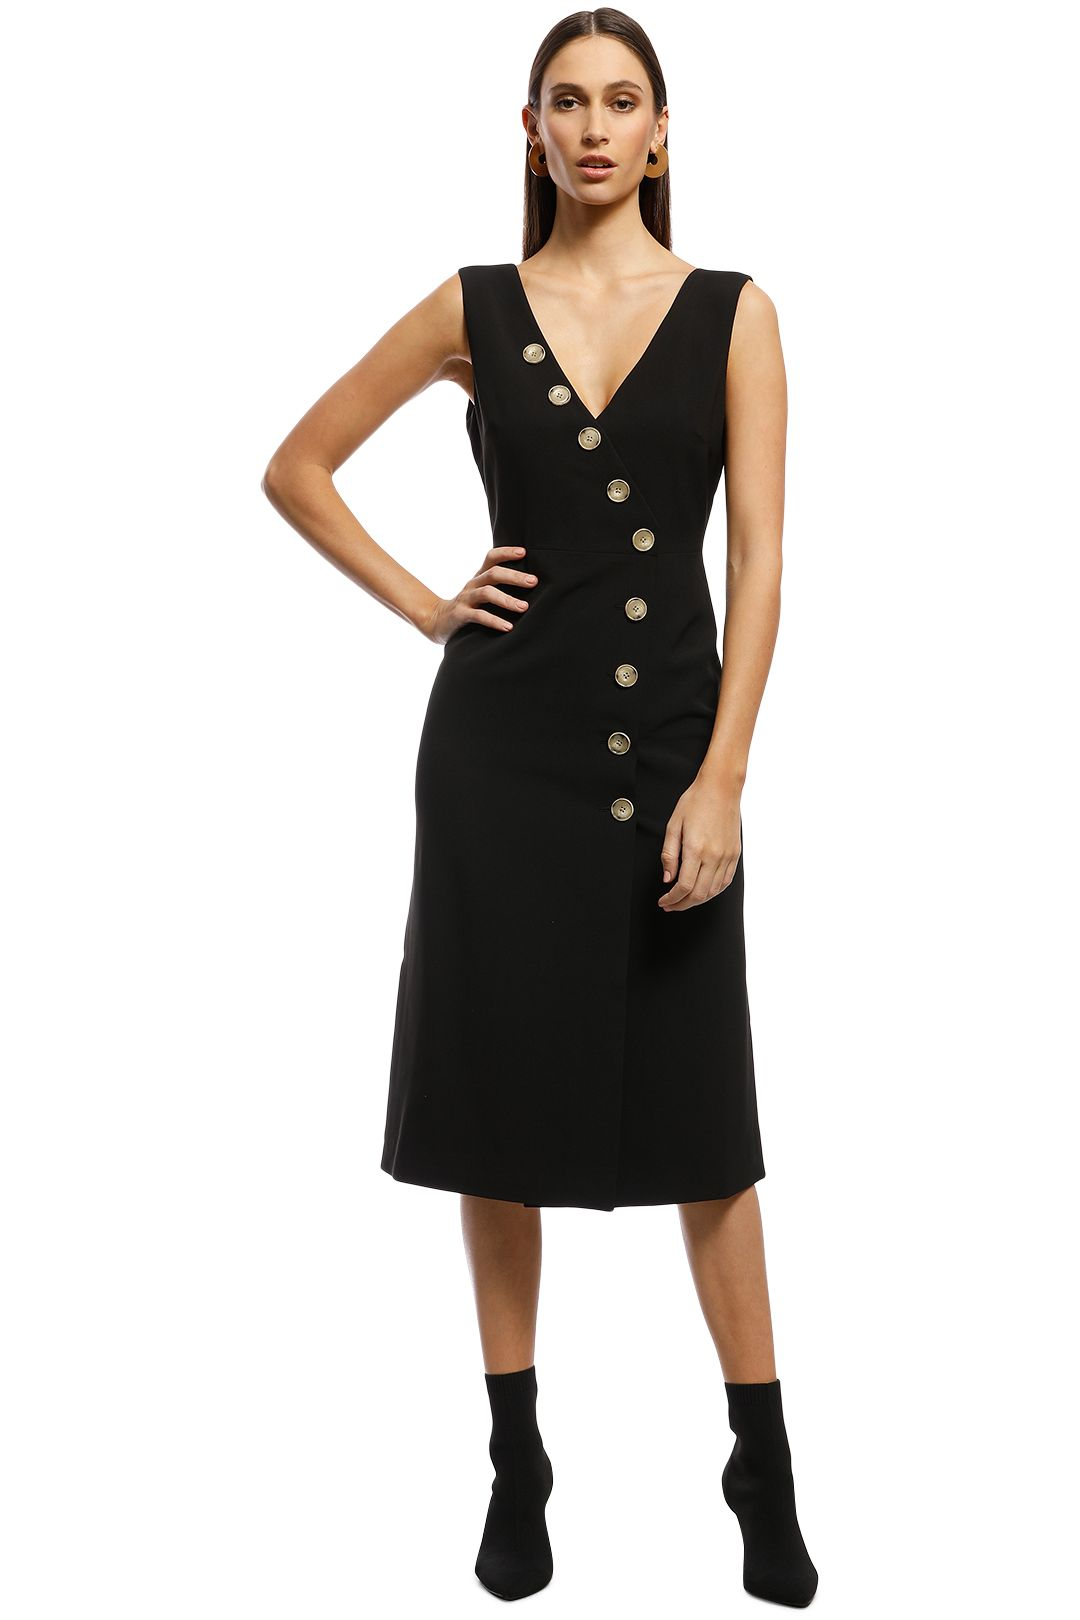 Friend of Audrey - Dylan Buttoned Dress - Black - Front